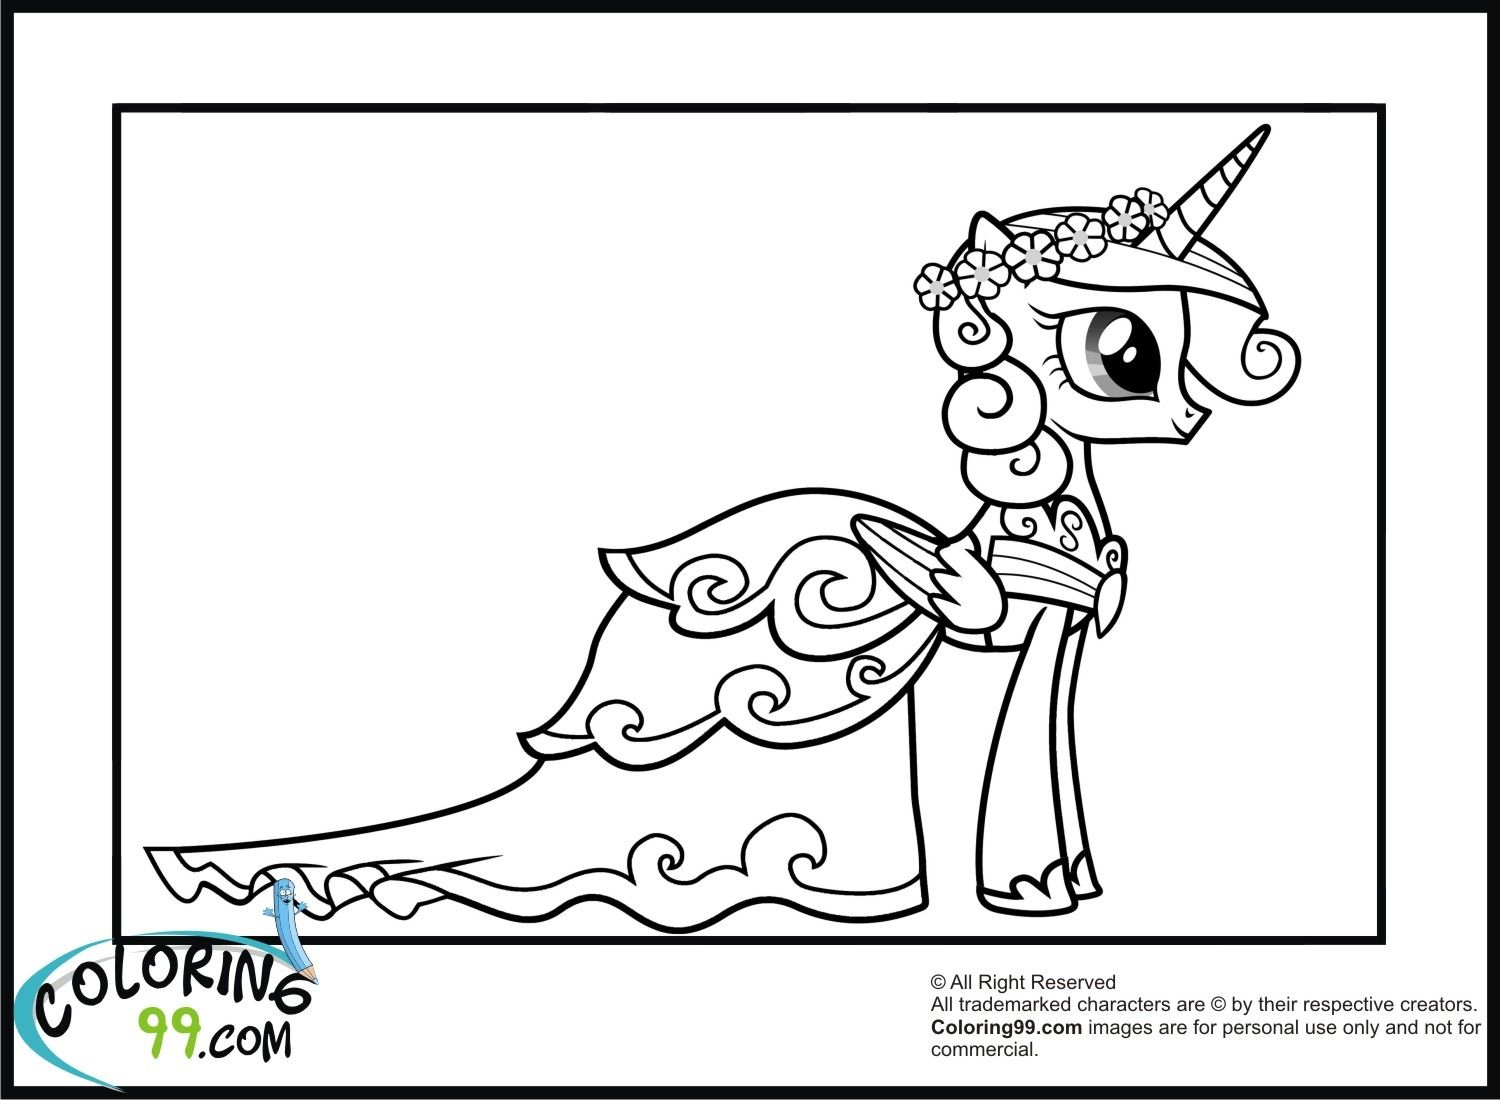 Prinzessin Cadance Ausmalbilder : My Little Pony Princess Cadence Coloring Pages Coloring Pages